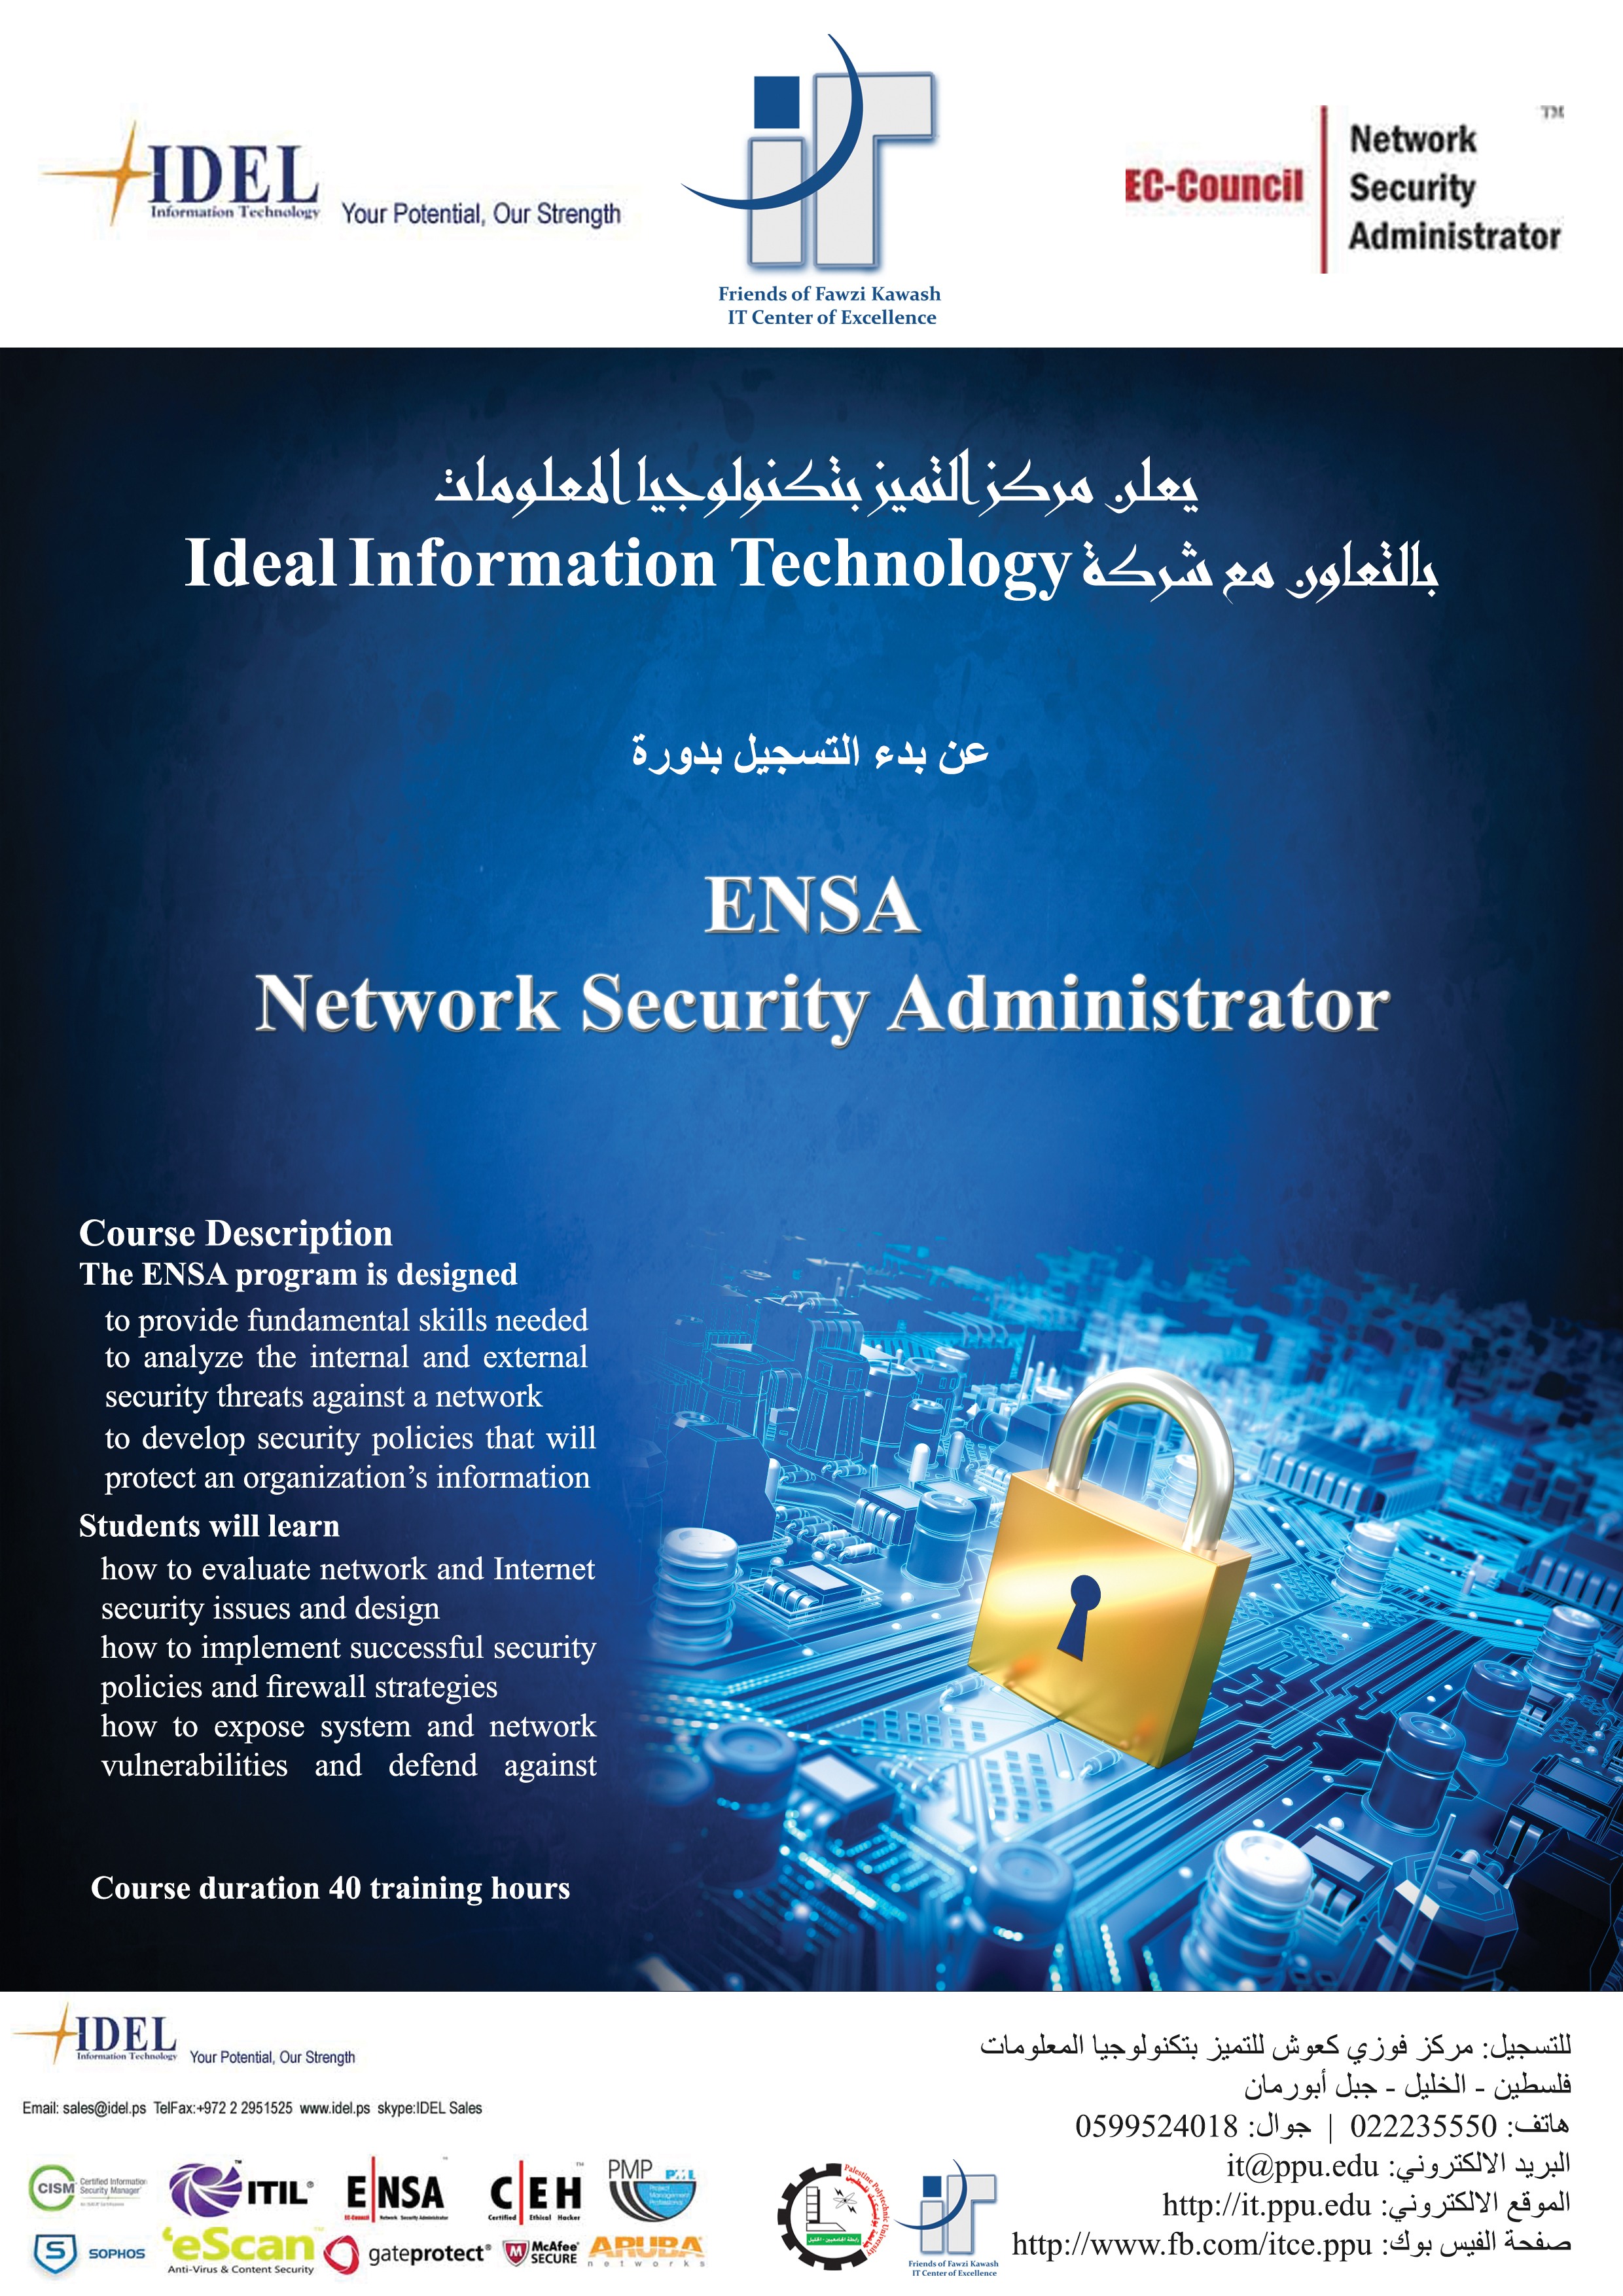 Ensa (network Security Administrator)  It Center Of. Online Paramedic Degree Bradenton Car Dealers. Safety Harbor Senior Living All Star Company. Medical Coding Degrees Online. Best Available Mortgage Rates. Best Hosting For Ruby On Rails. Are Credit Repair Companies Legit. Plastic Injection Molds Civil Engineer Online. Electrical Engineering Dictionary